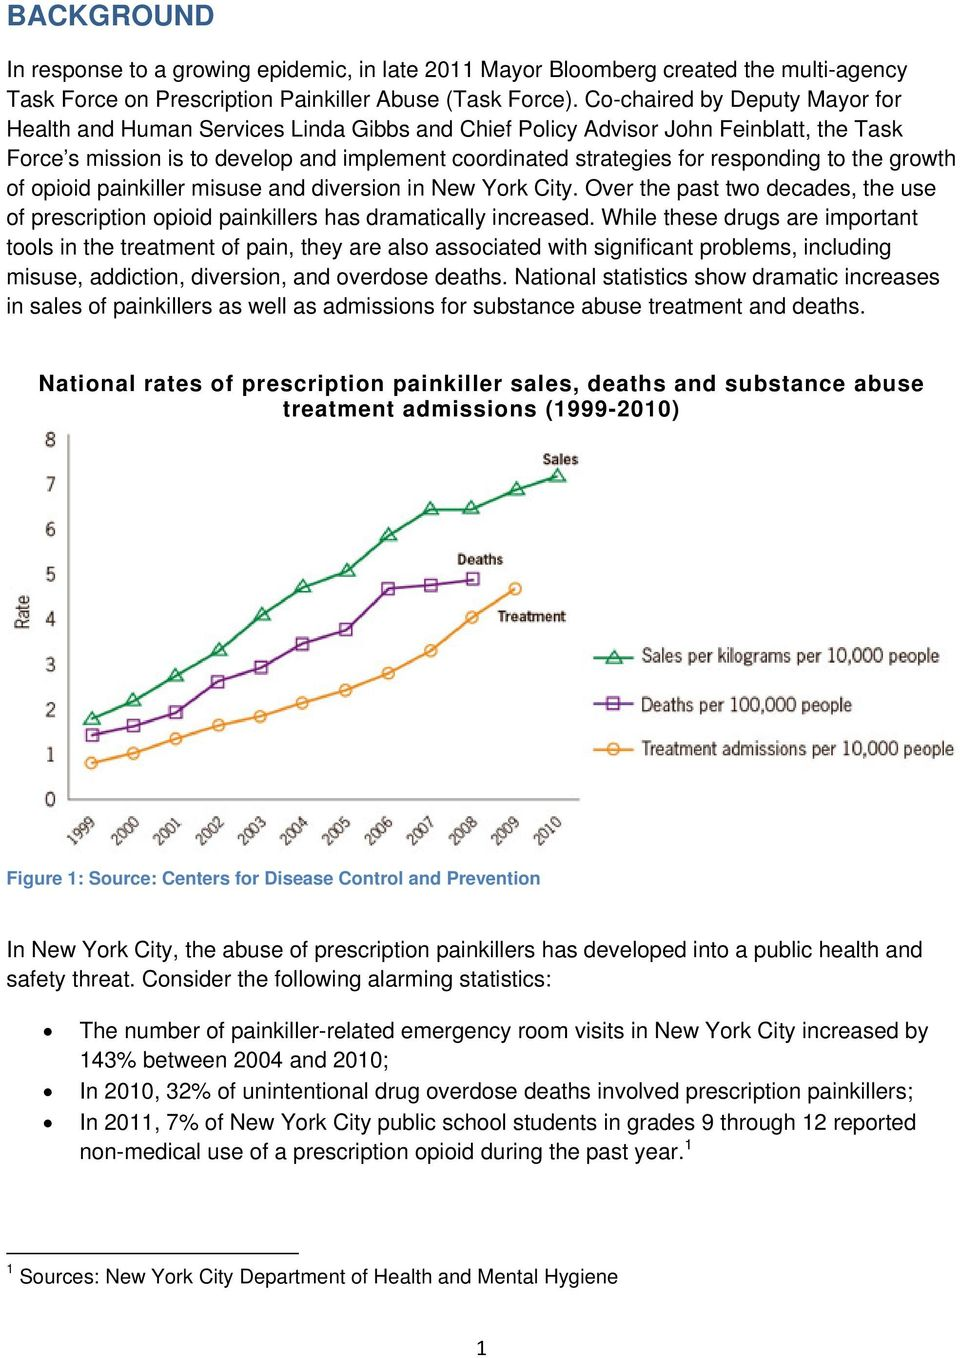 responding to the growth of opioid painkiller misuse and diversion in New York City. Over the past two decades, the use of prescription opioid painkillers has dramatically increased.